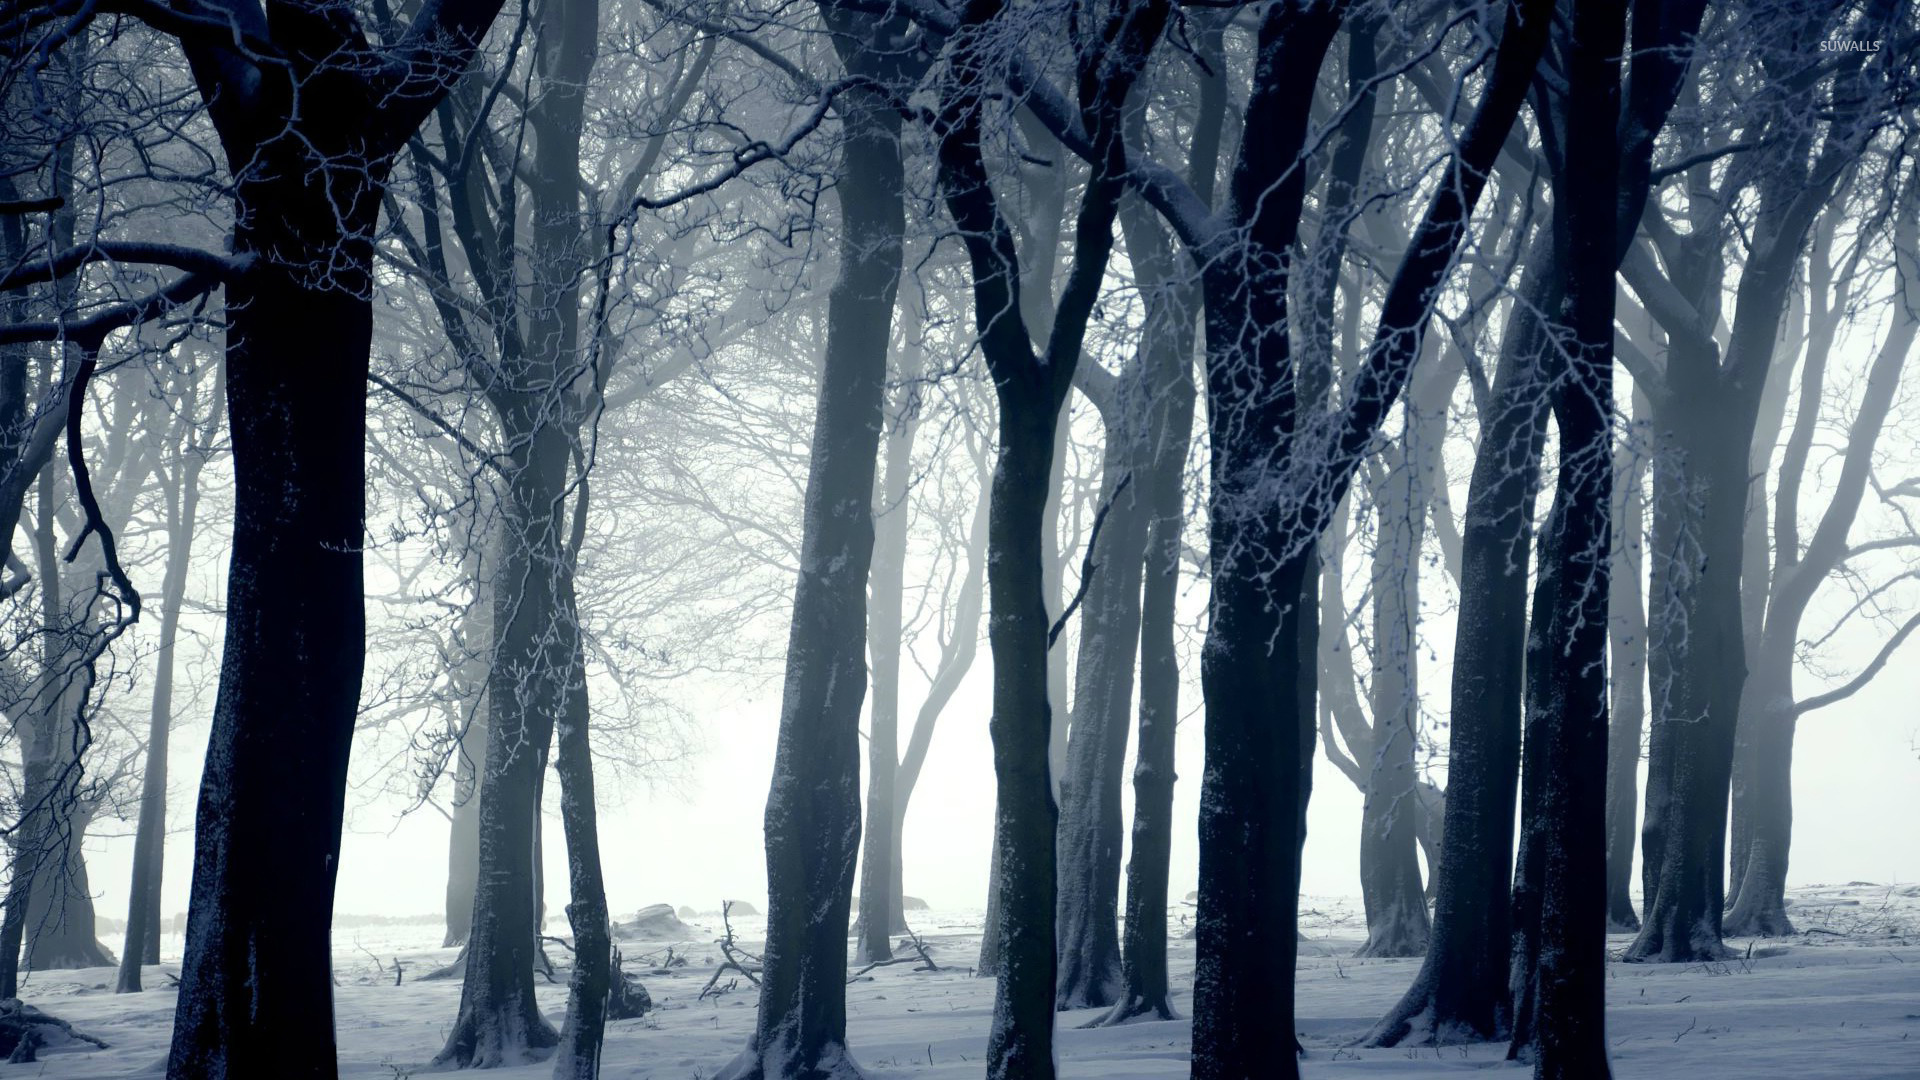 dark forest in winter wallpaper photography wallpapers